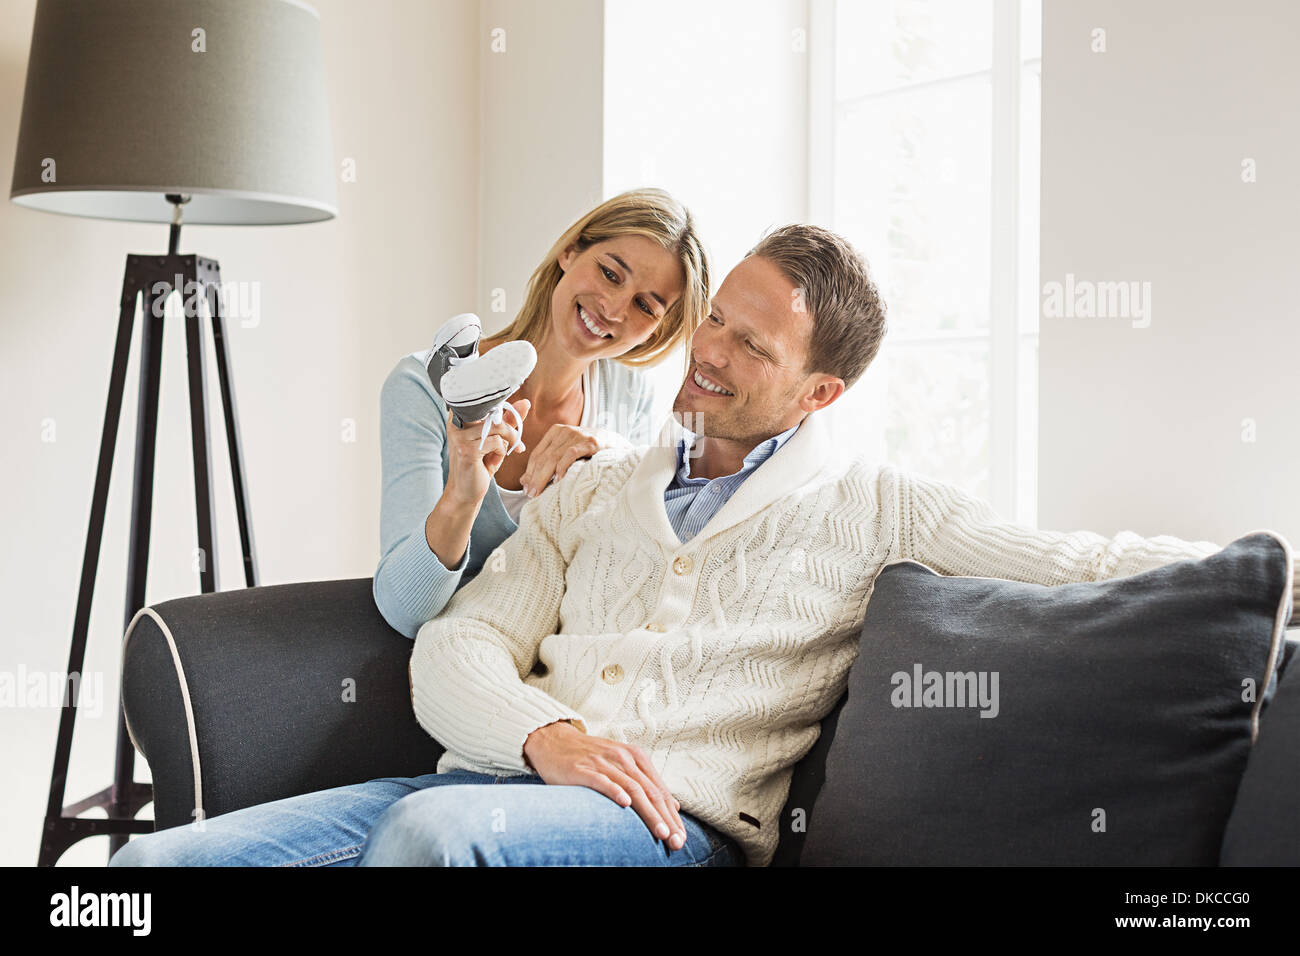 Mid adult couple, woman holding baby shoes - Stock Image